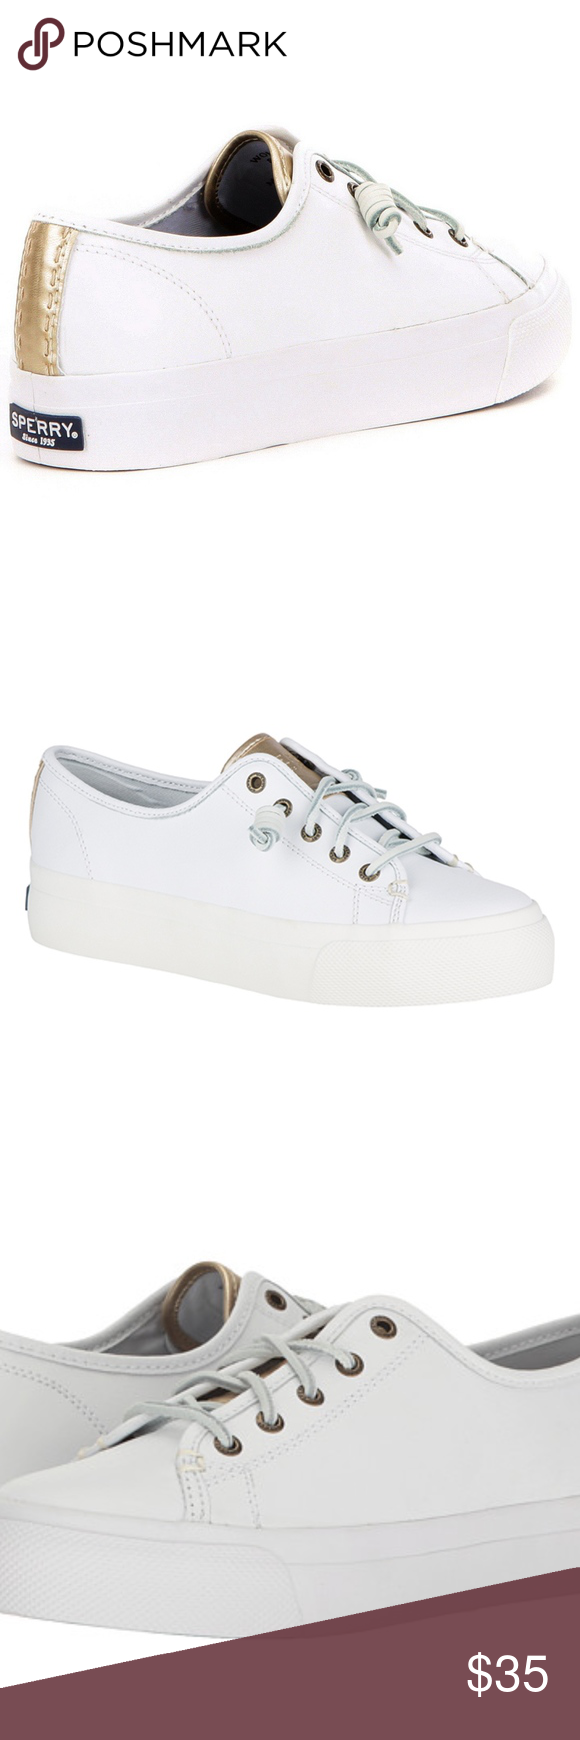 0404e4281a Women Sperry Sky Sail Leather White Gold Platform Women Sperry Sky Sail  Leather White Gold Platform